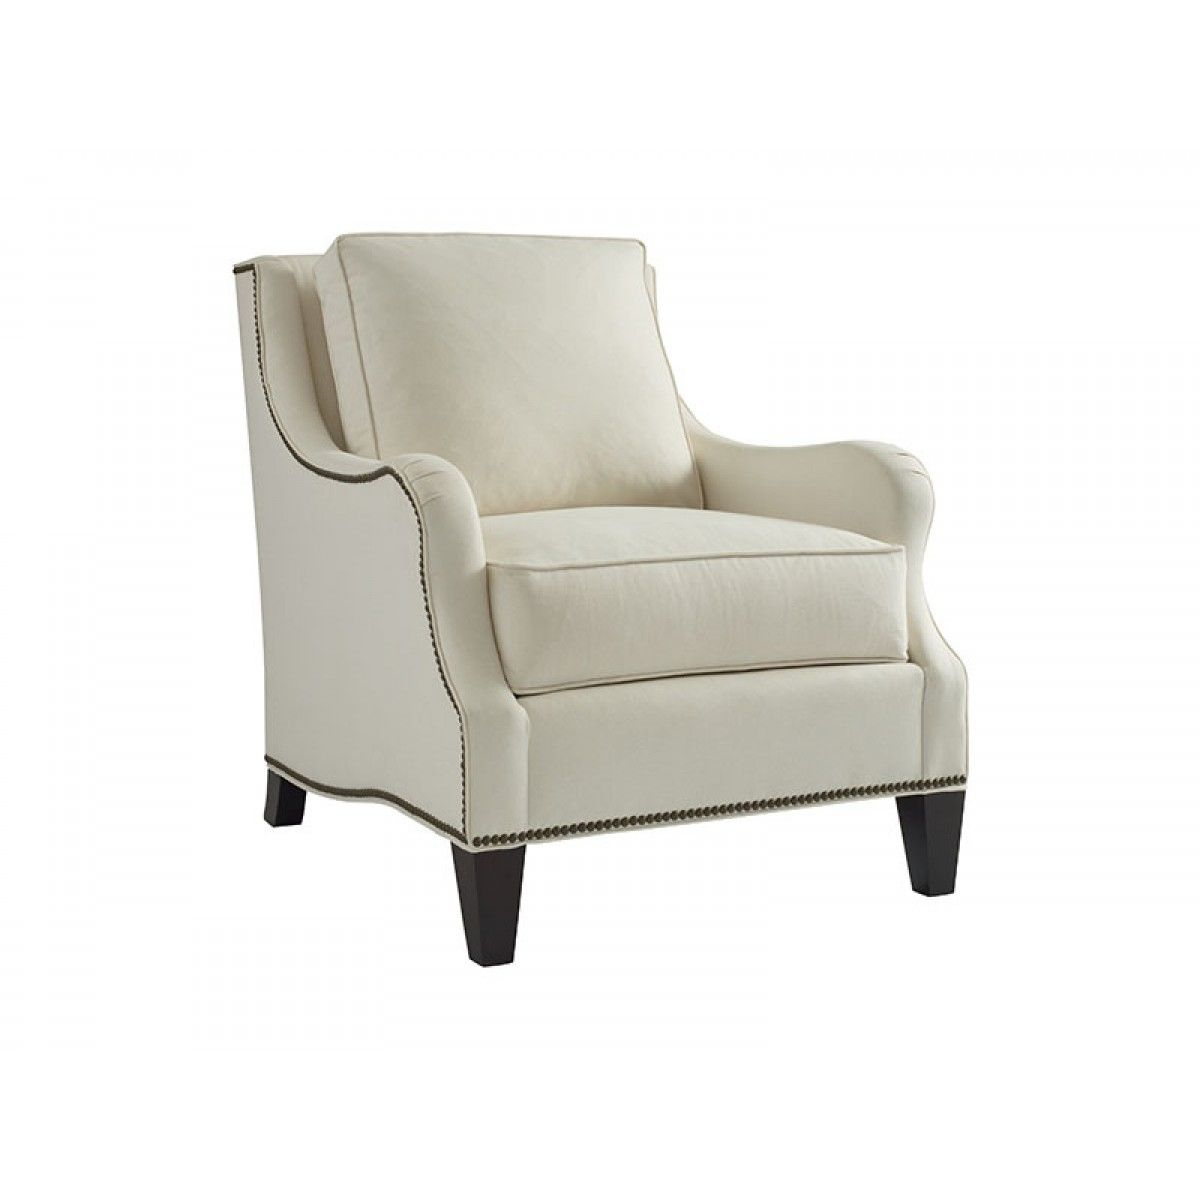 Thomasville Upholstery/leather Aiden Chair | Furniture | Pinterest Regarding Aidan Ii Swivel Accent Chairs (Image 19 of 20)